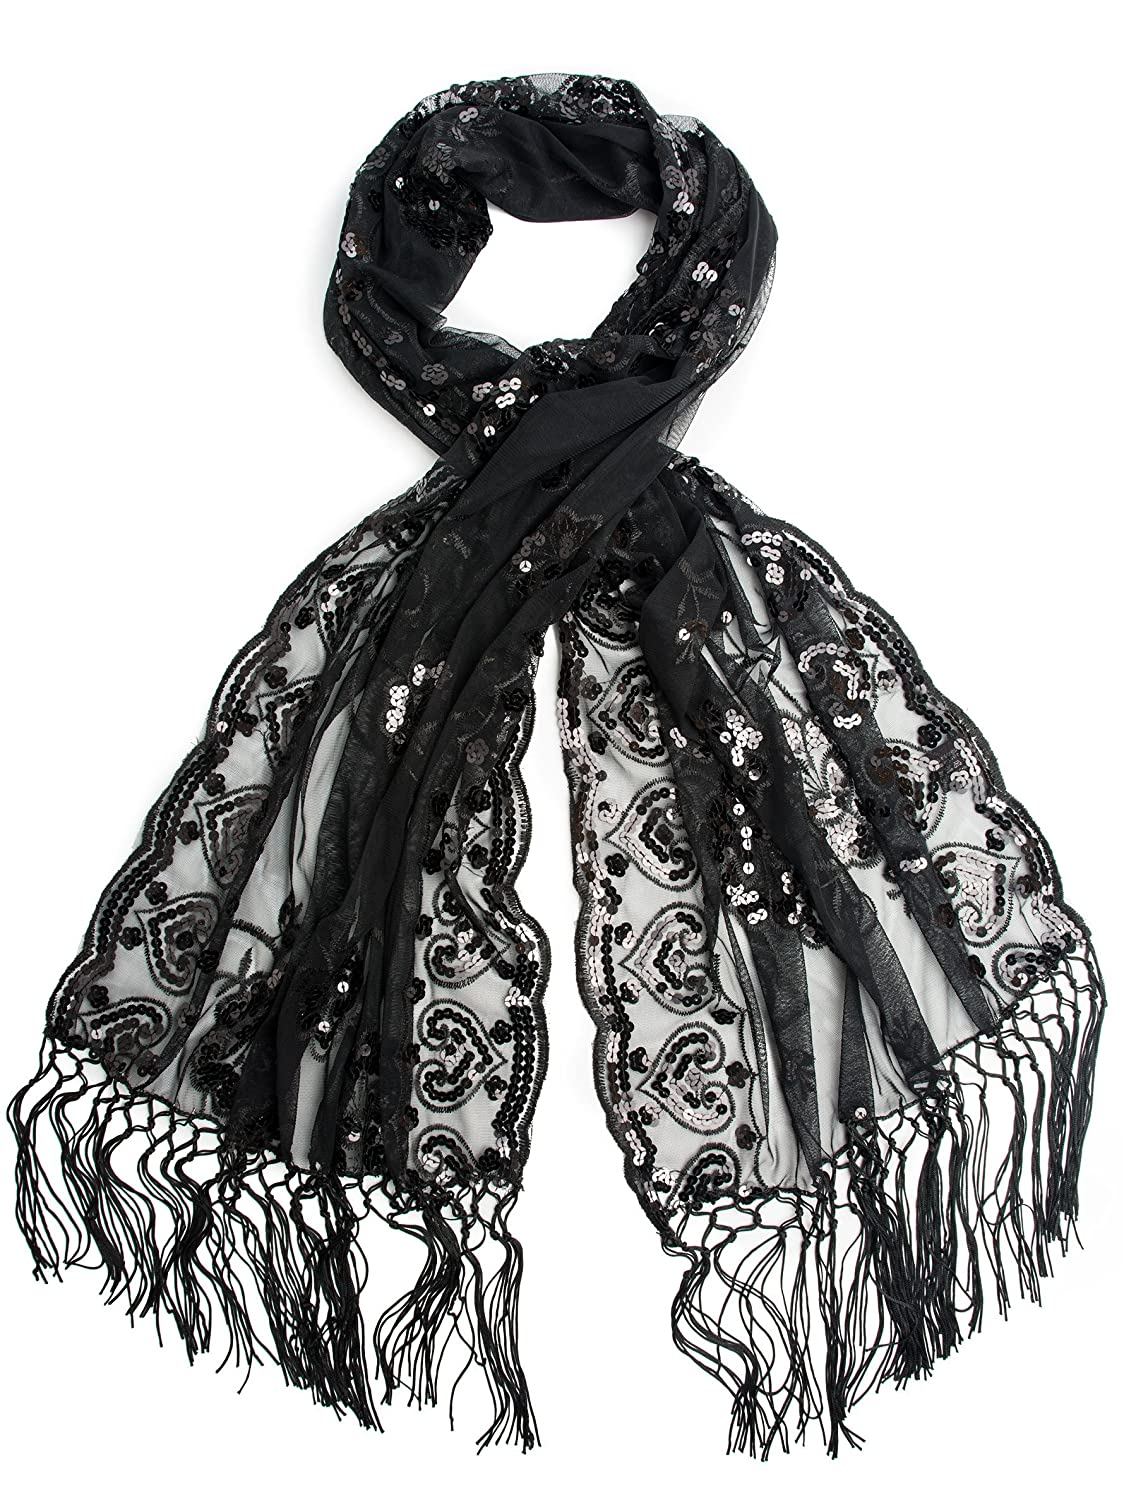 1920s Clothing Black Madison Shawl Long Fringe Sequin Evening Wrap $14.95 AT vintagedancer.com